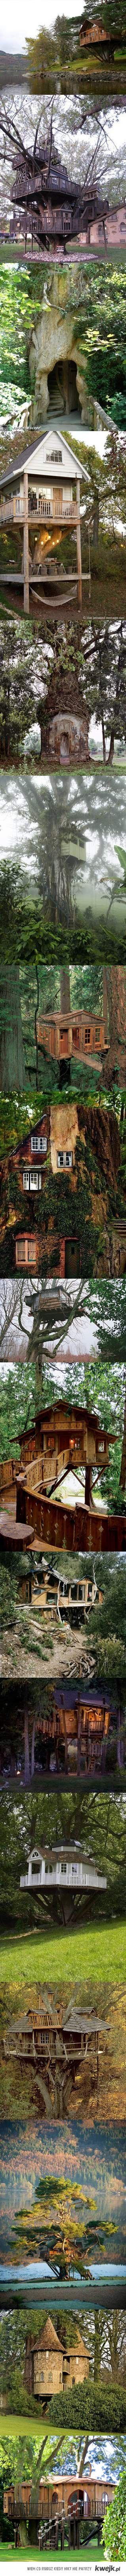 I love treehouses. The more fantastical, the better.